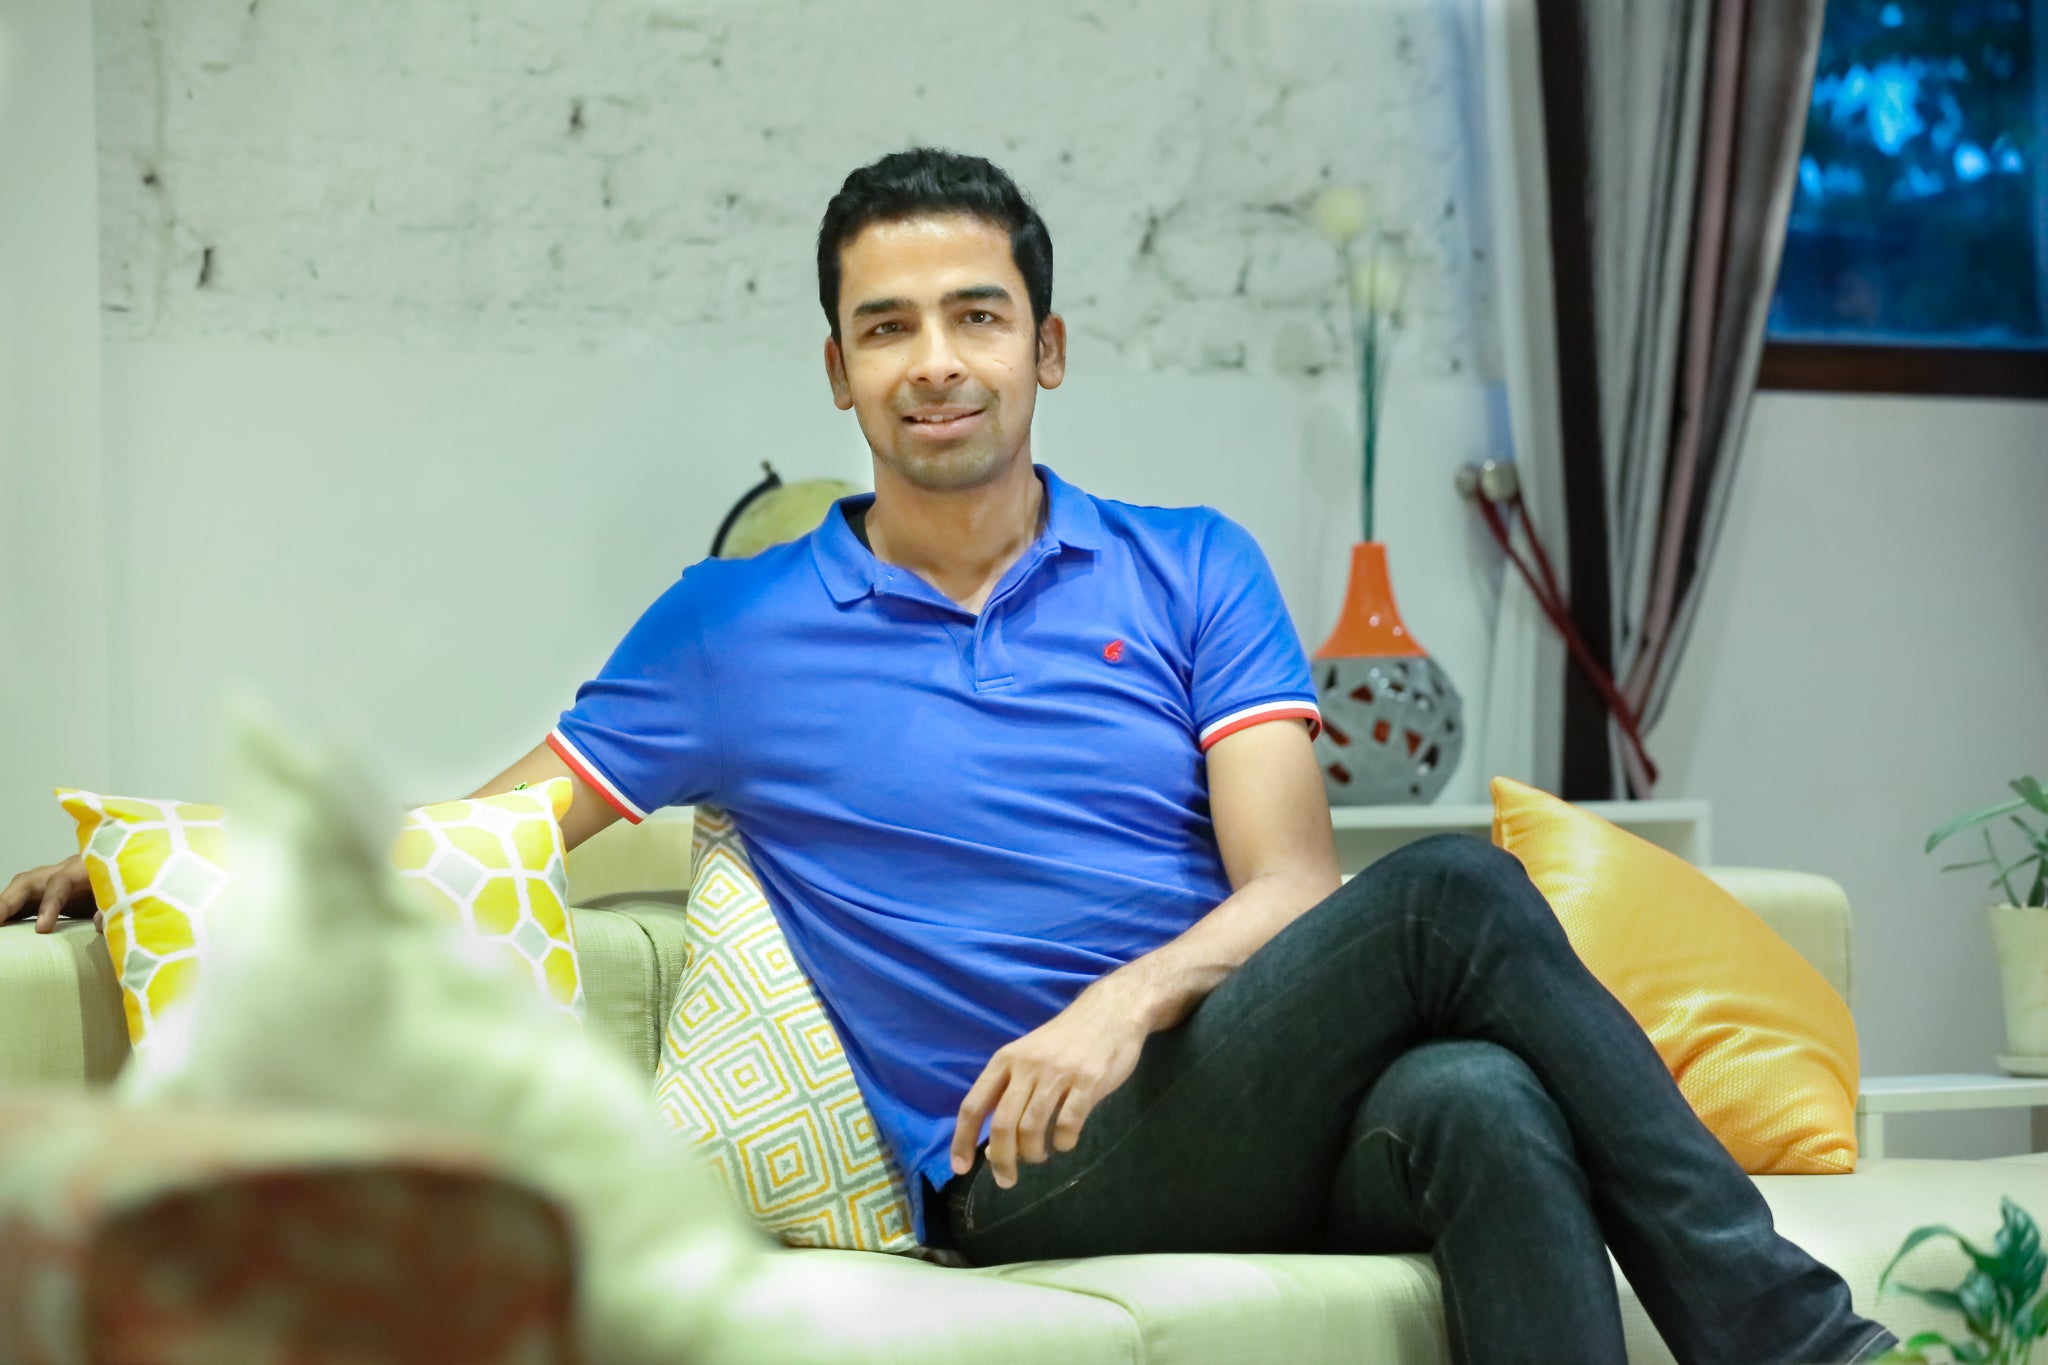 Anuj Srivastava, Co-founder & CEO, Livspace